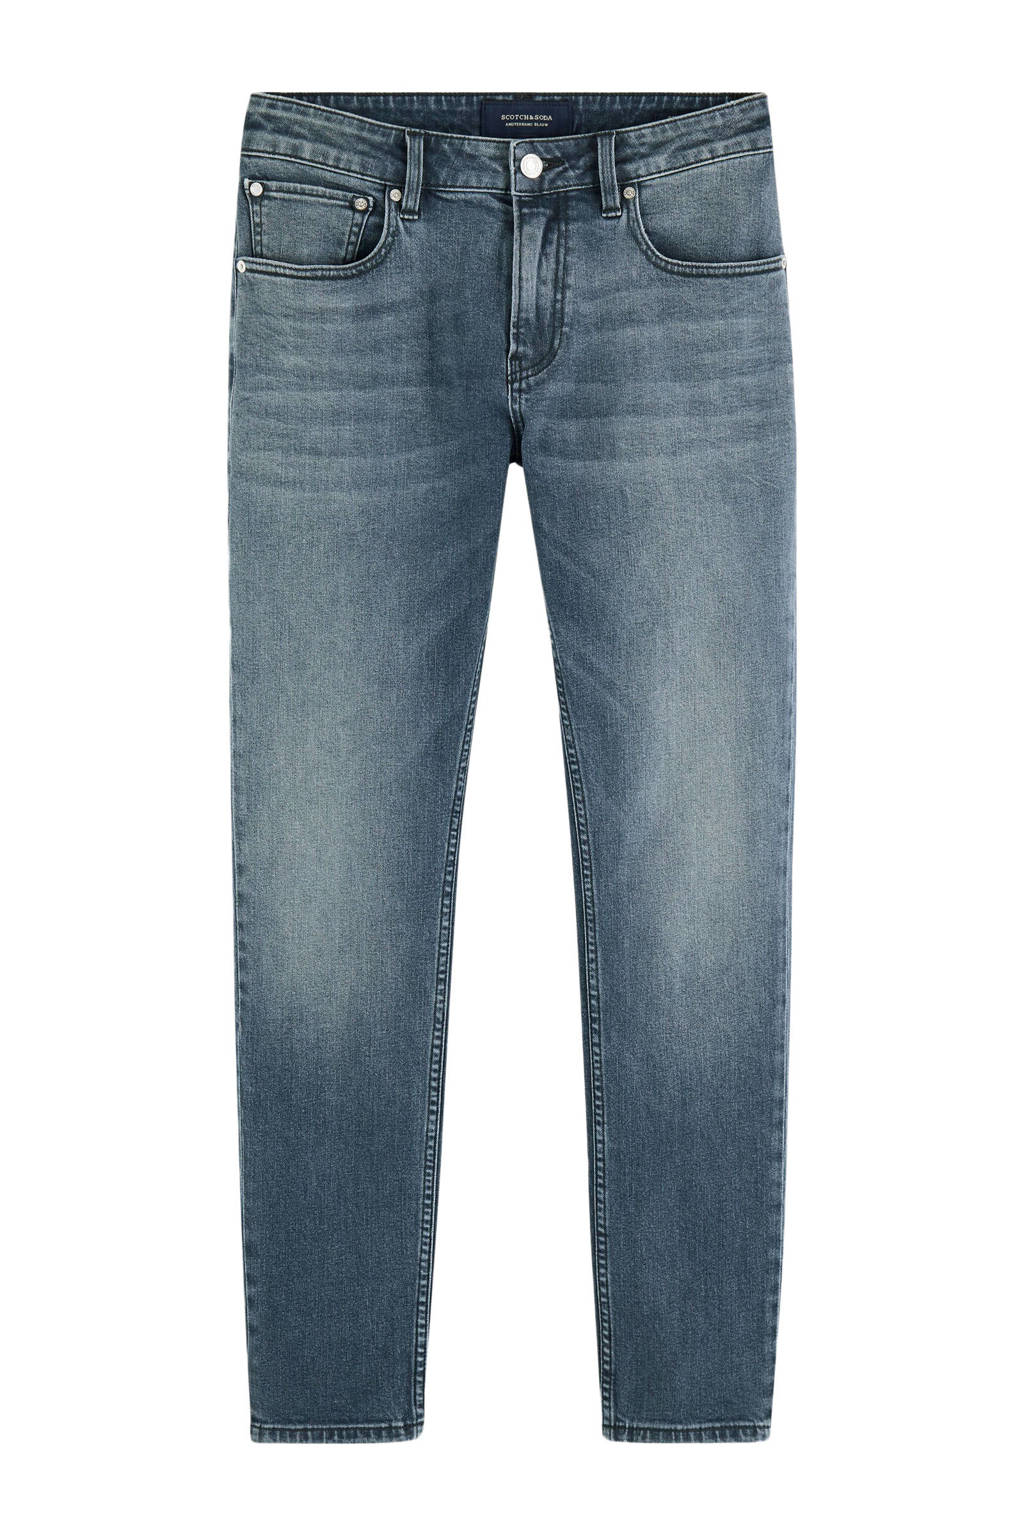 Scotch & Soda slim fit jeans Skim moonlight, Moonlight